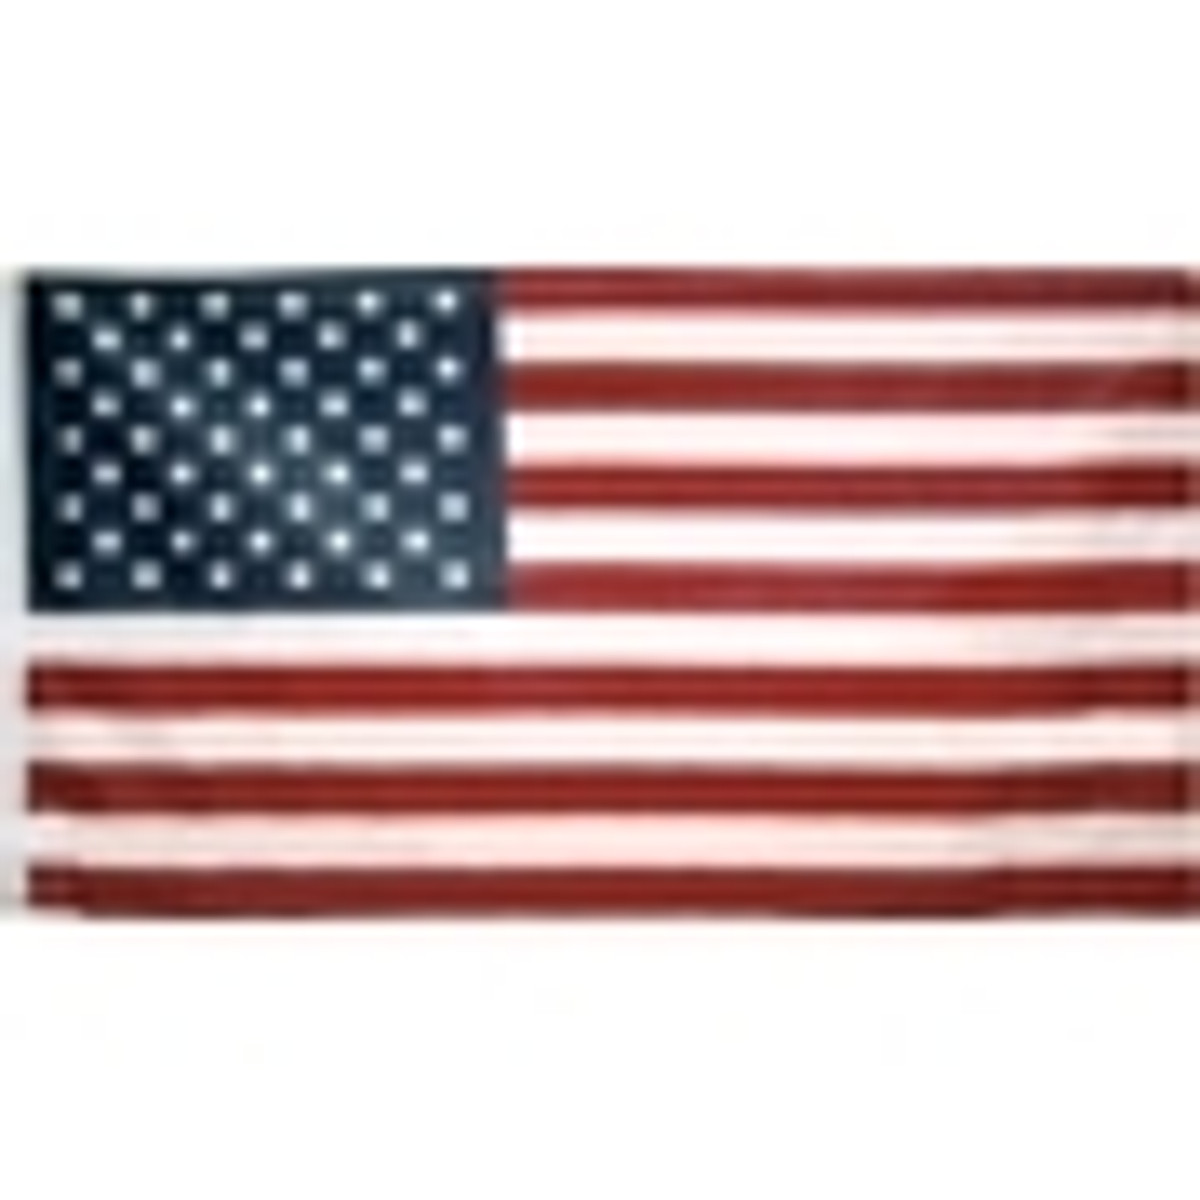 View all US Flags